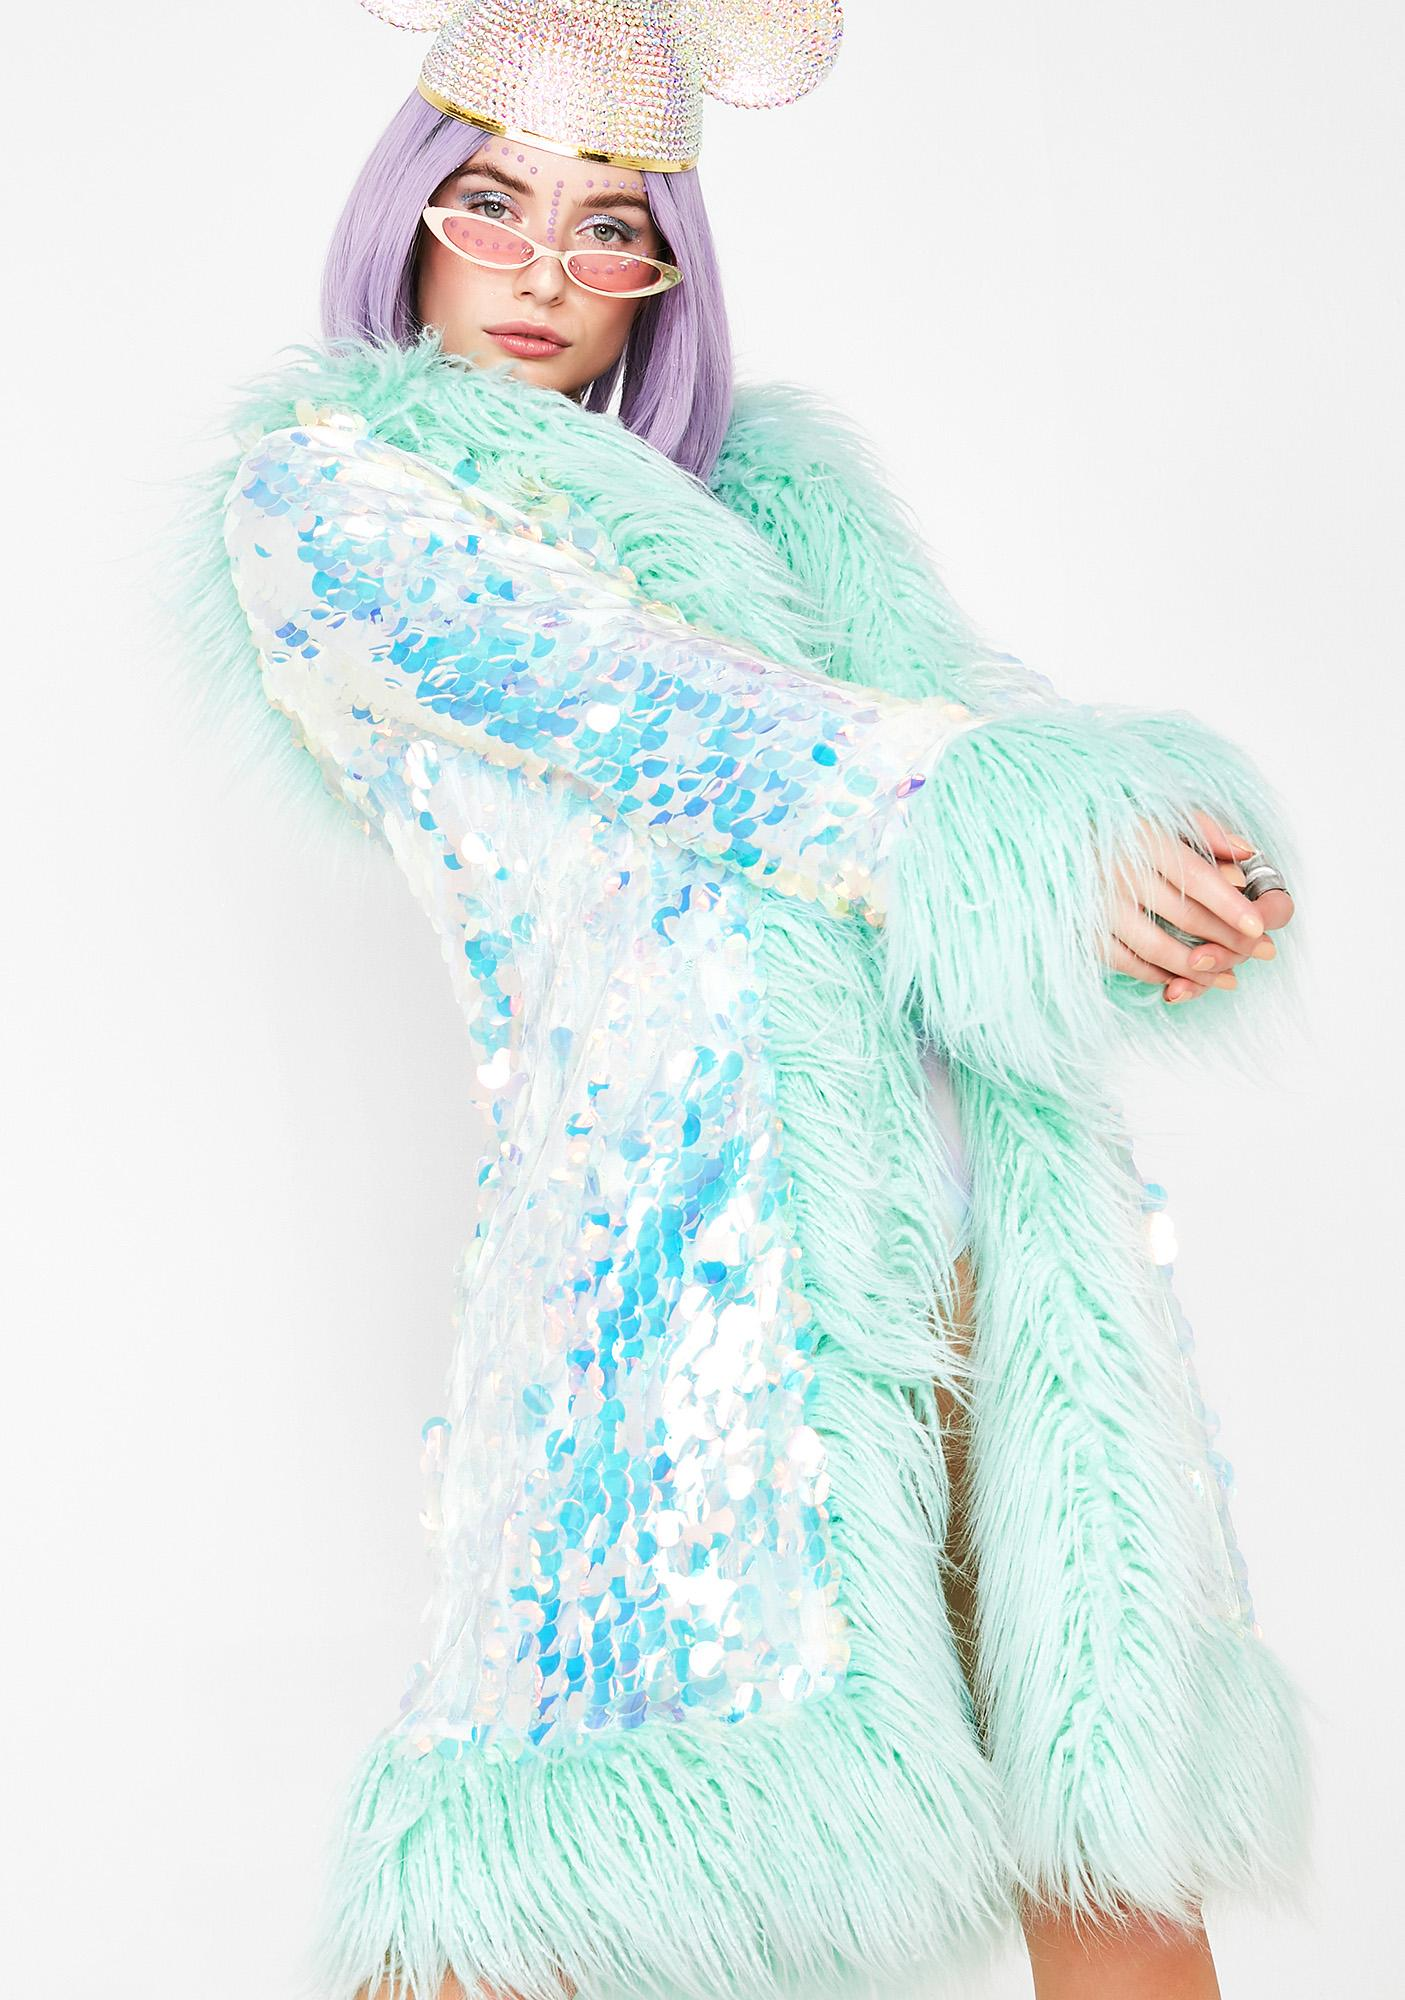 Club Exx Galactic Glamgasm Sequin Coat